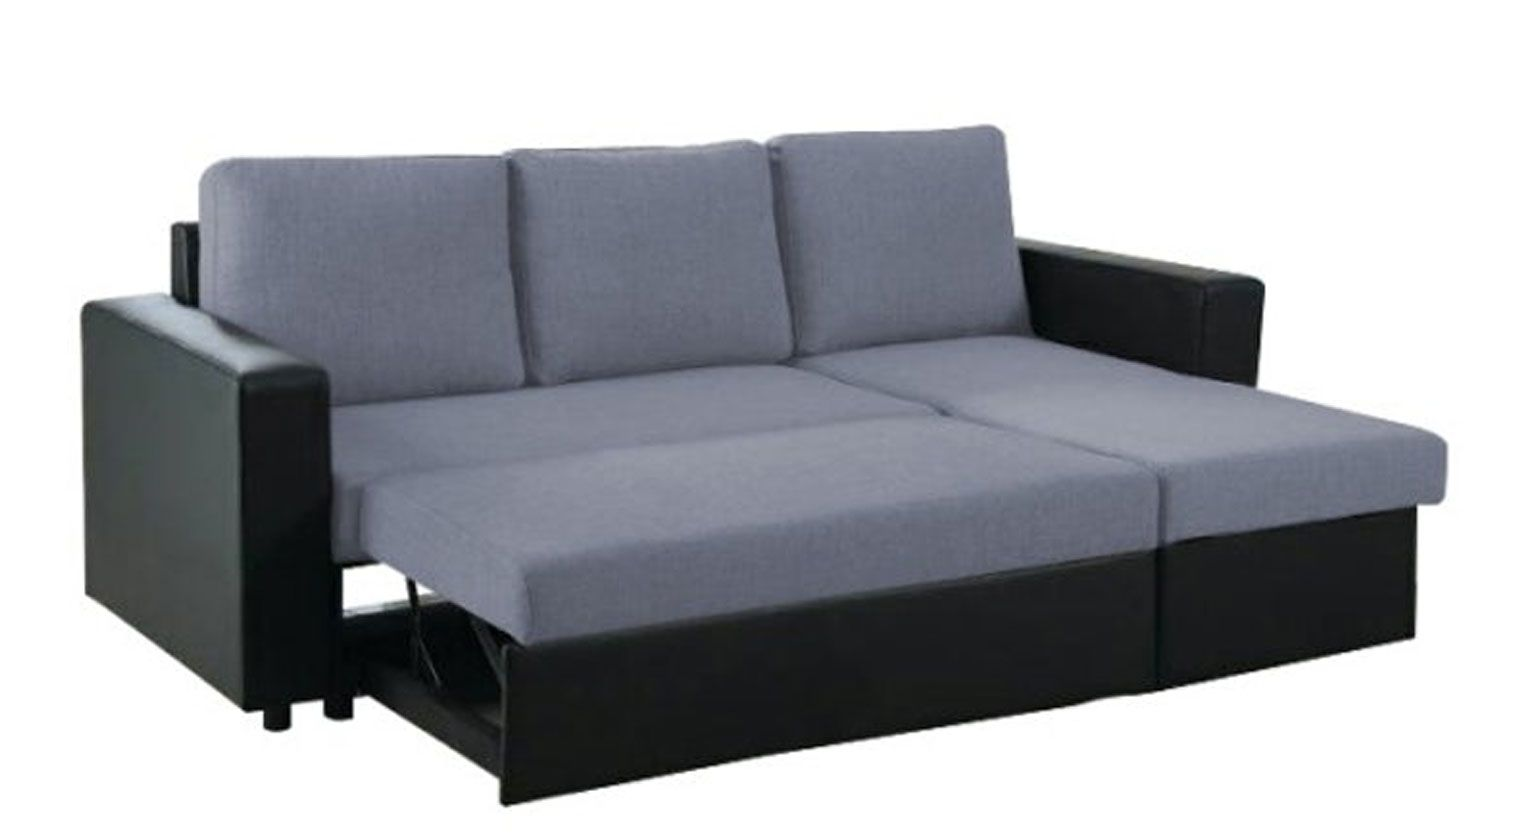 tumb-Chaise-Longue-Cama-DENIA-2